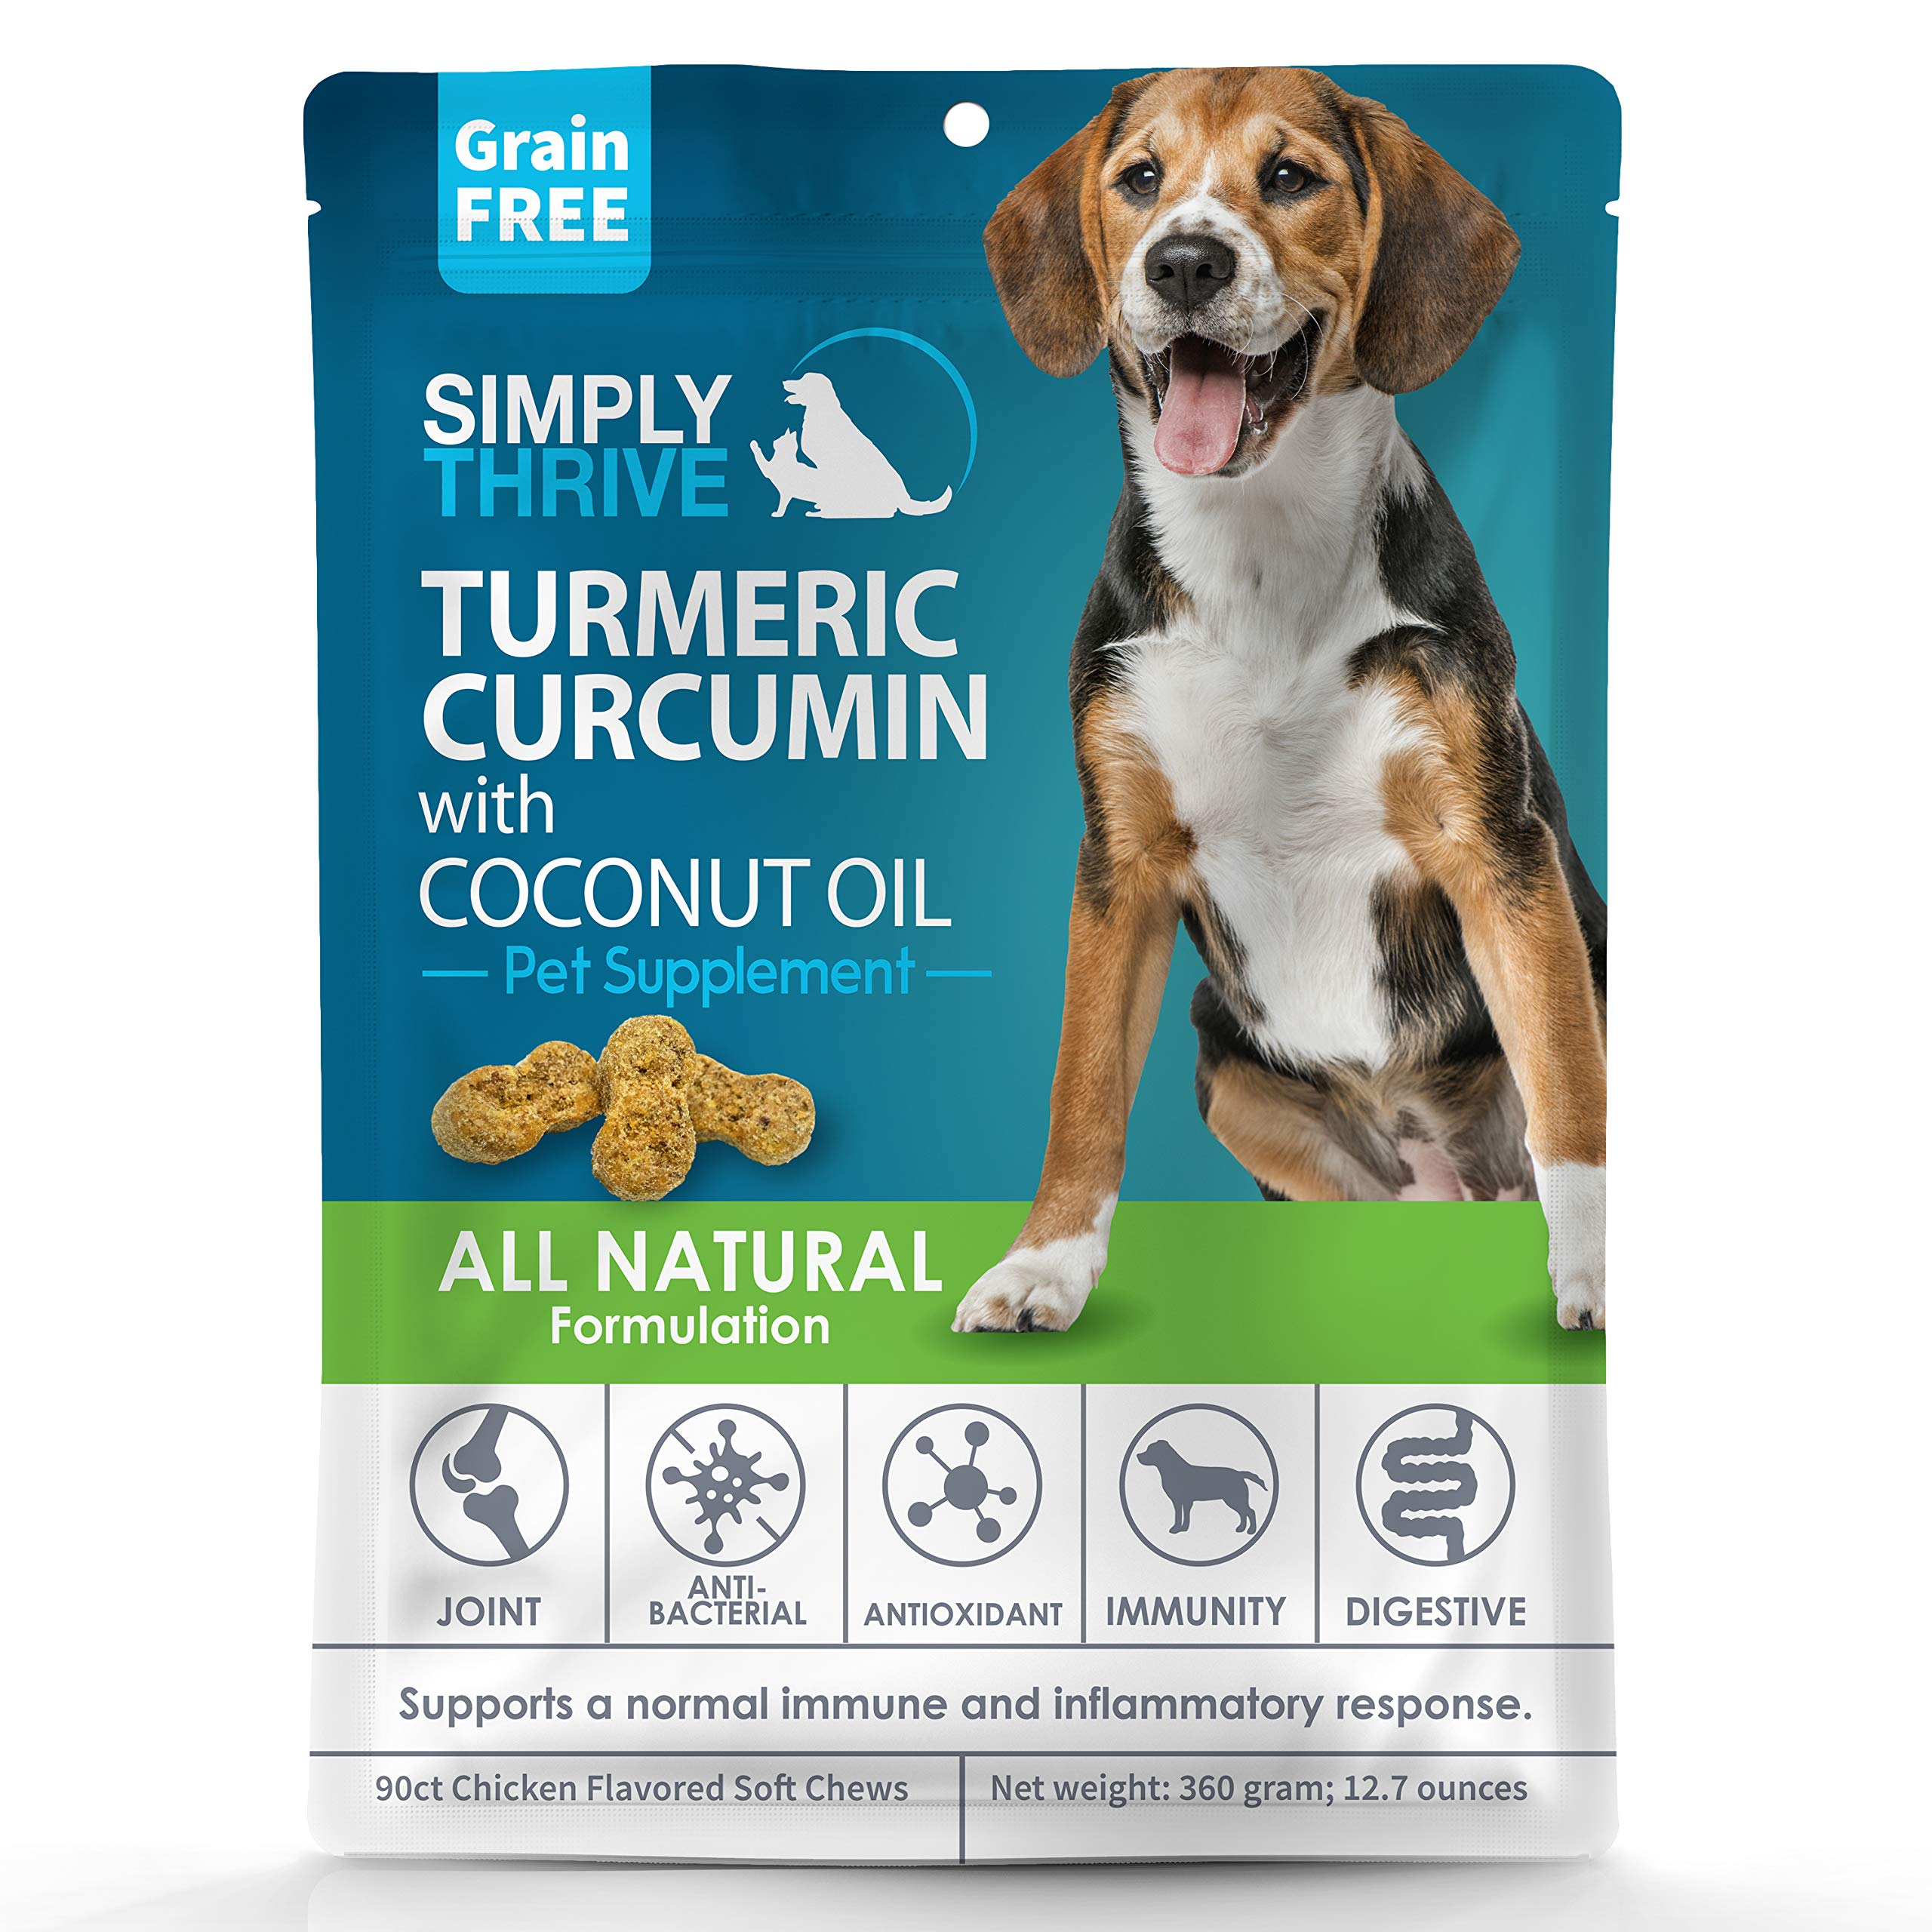 Turmeric Curcumin Supplement for Dogs | 90 ct Soft Chew Treats | Helps With Mobility Hip Joint & Arthritis | Coconut Oil Aids Digestion and Immunity | Natural Source of Antioxidant, Antiinflammatory by Simply Thrive